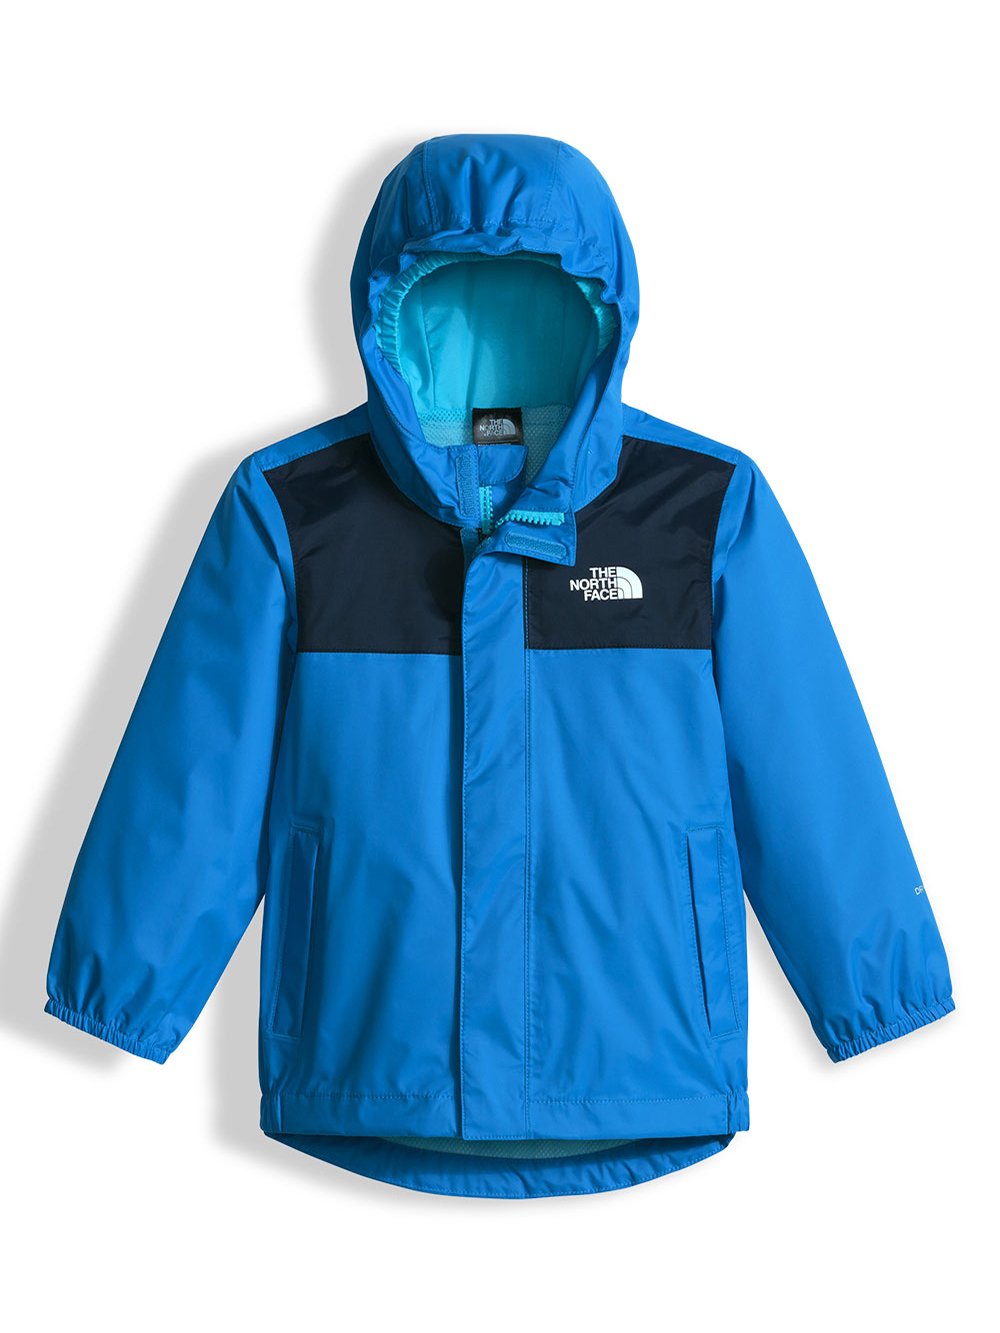 The North Face Little Boys' Tailout Rain Jacket (Sizes 5 - 6) - clear lake blue, 5